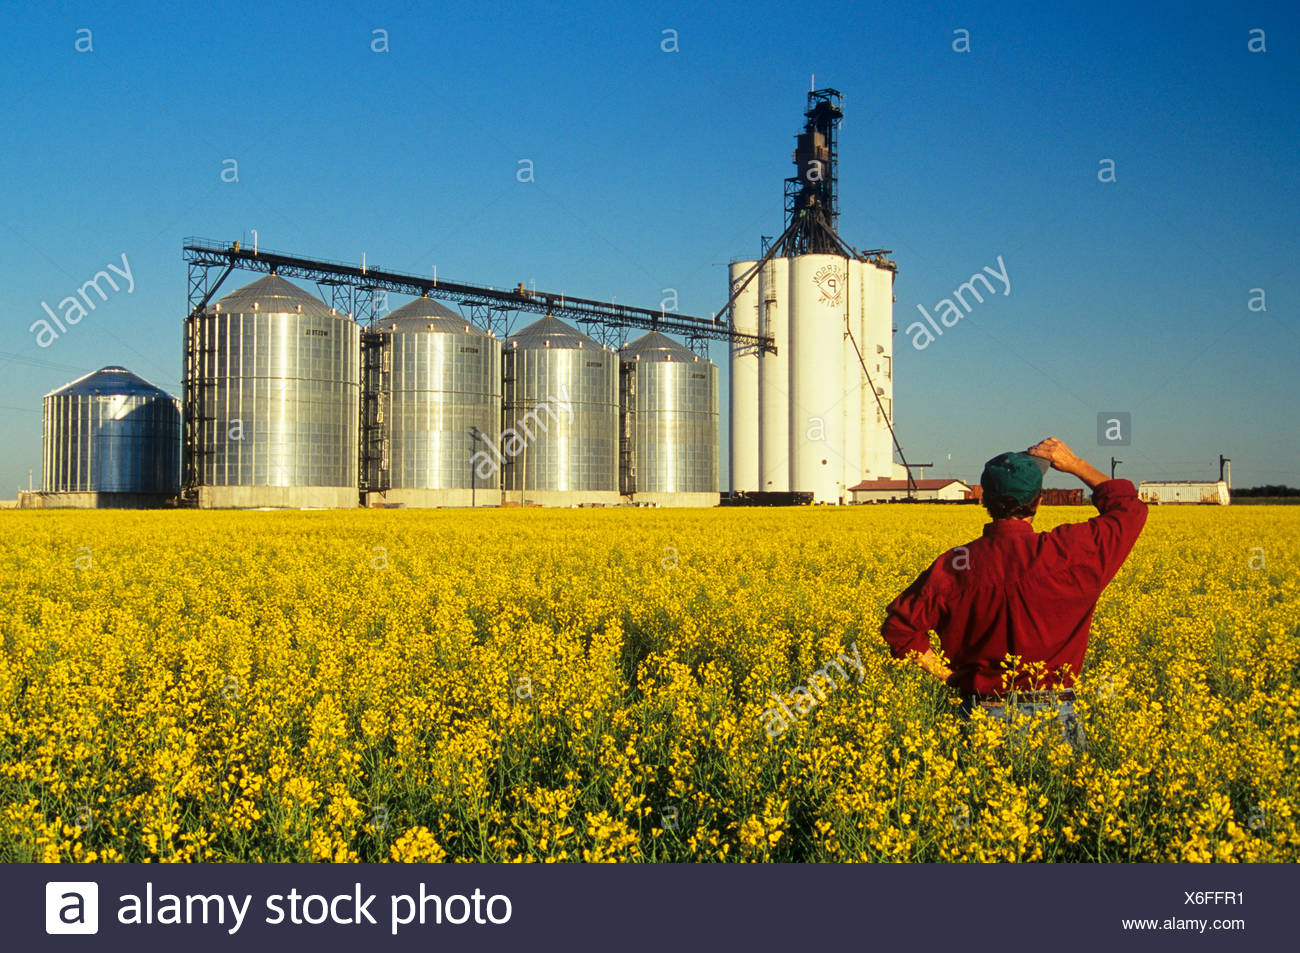 Farmer in bloom stage canola field with inland grain terminal in the background, Morris, Manitoba, Canada. - Stock Image